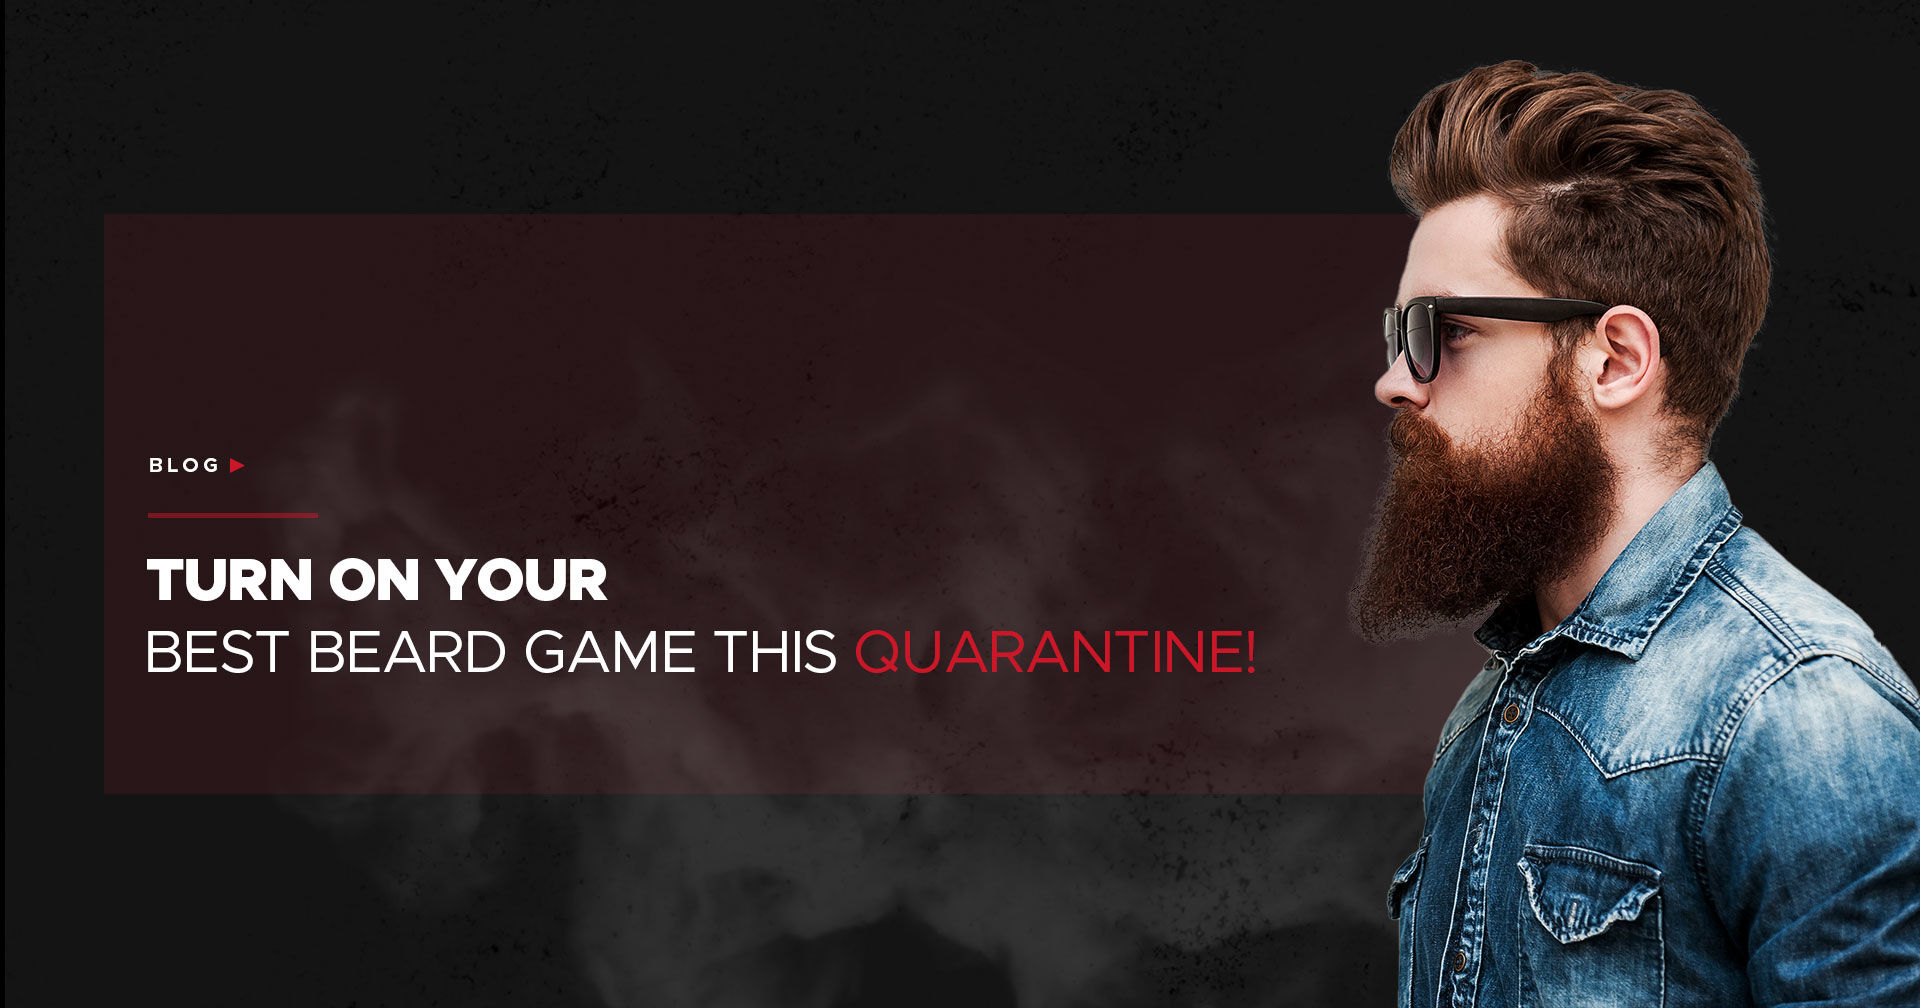 Turn On Your Best Beard Game This Quarantine!